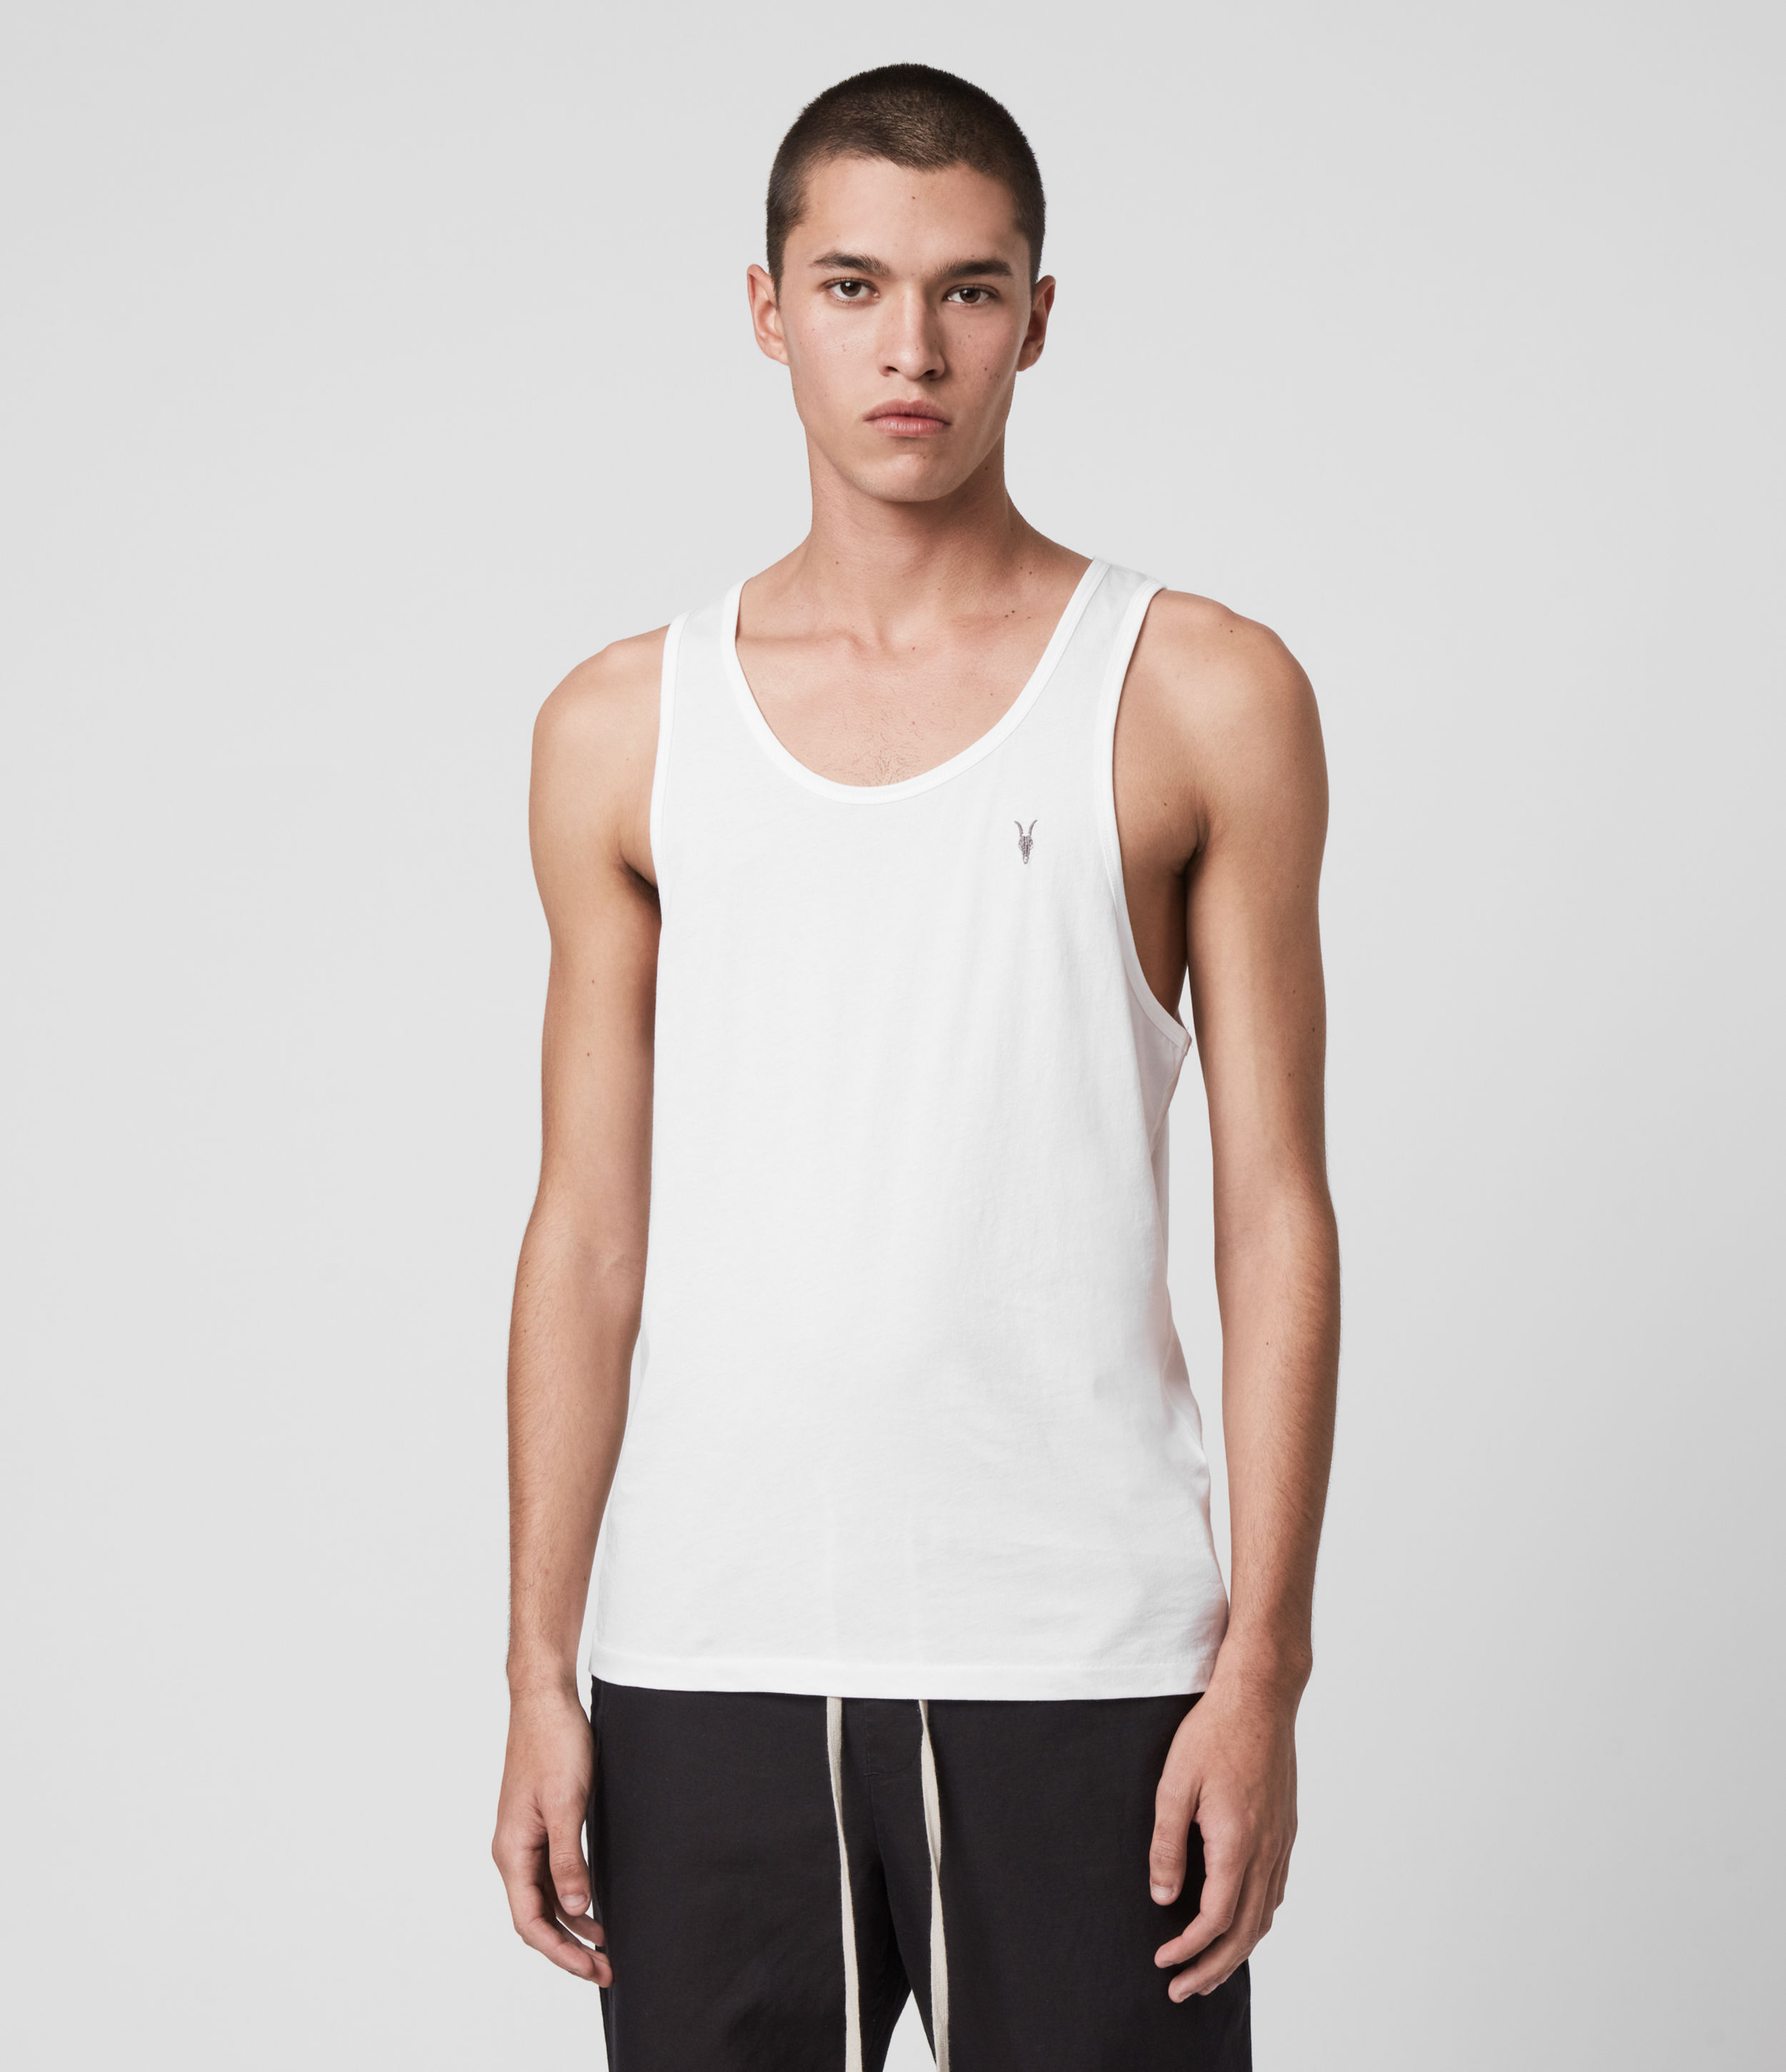 AllSaints Men's Cotton Regular Fit Lightweight Tonic Vest, White, Size: XXL